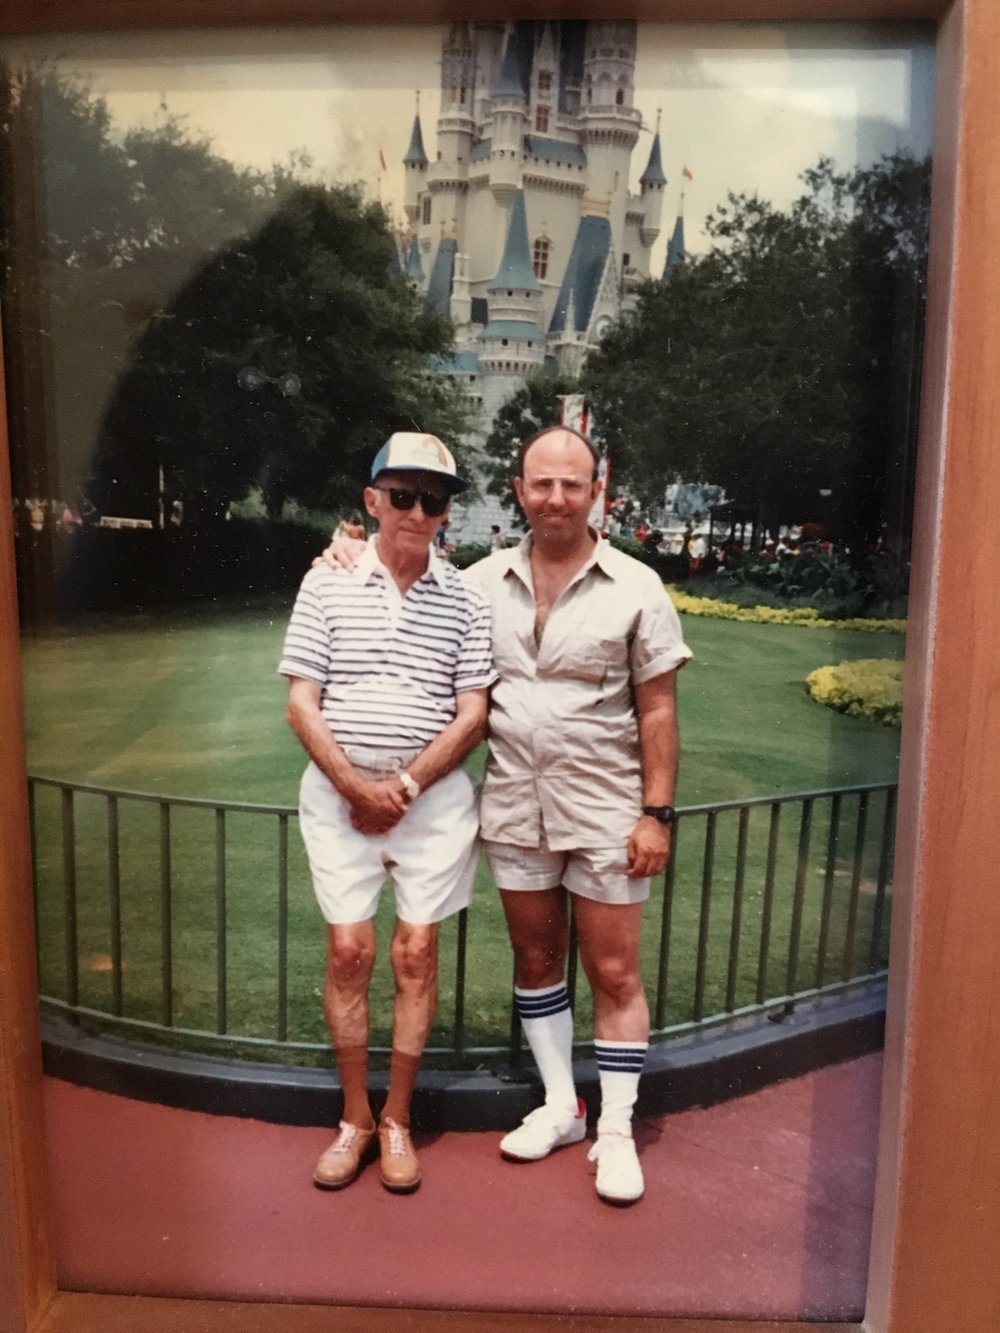 Grandpop and Pop in Disney World (and their knee socks!)